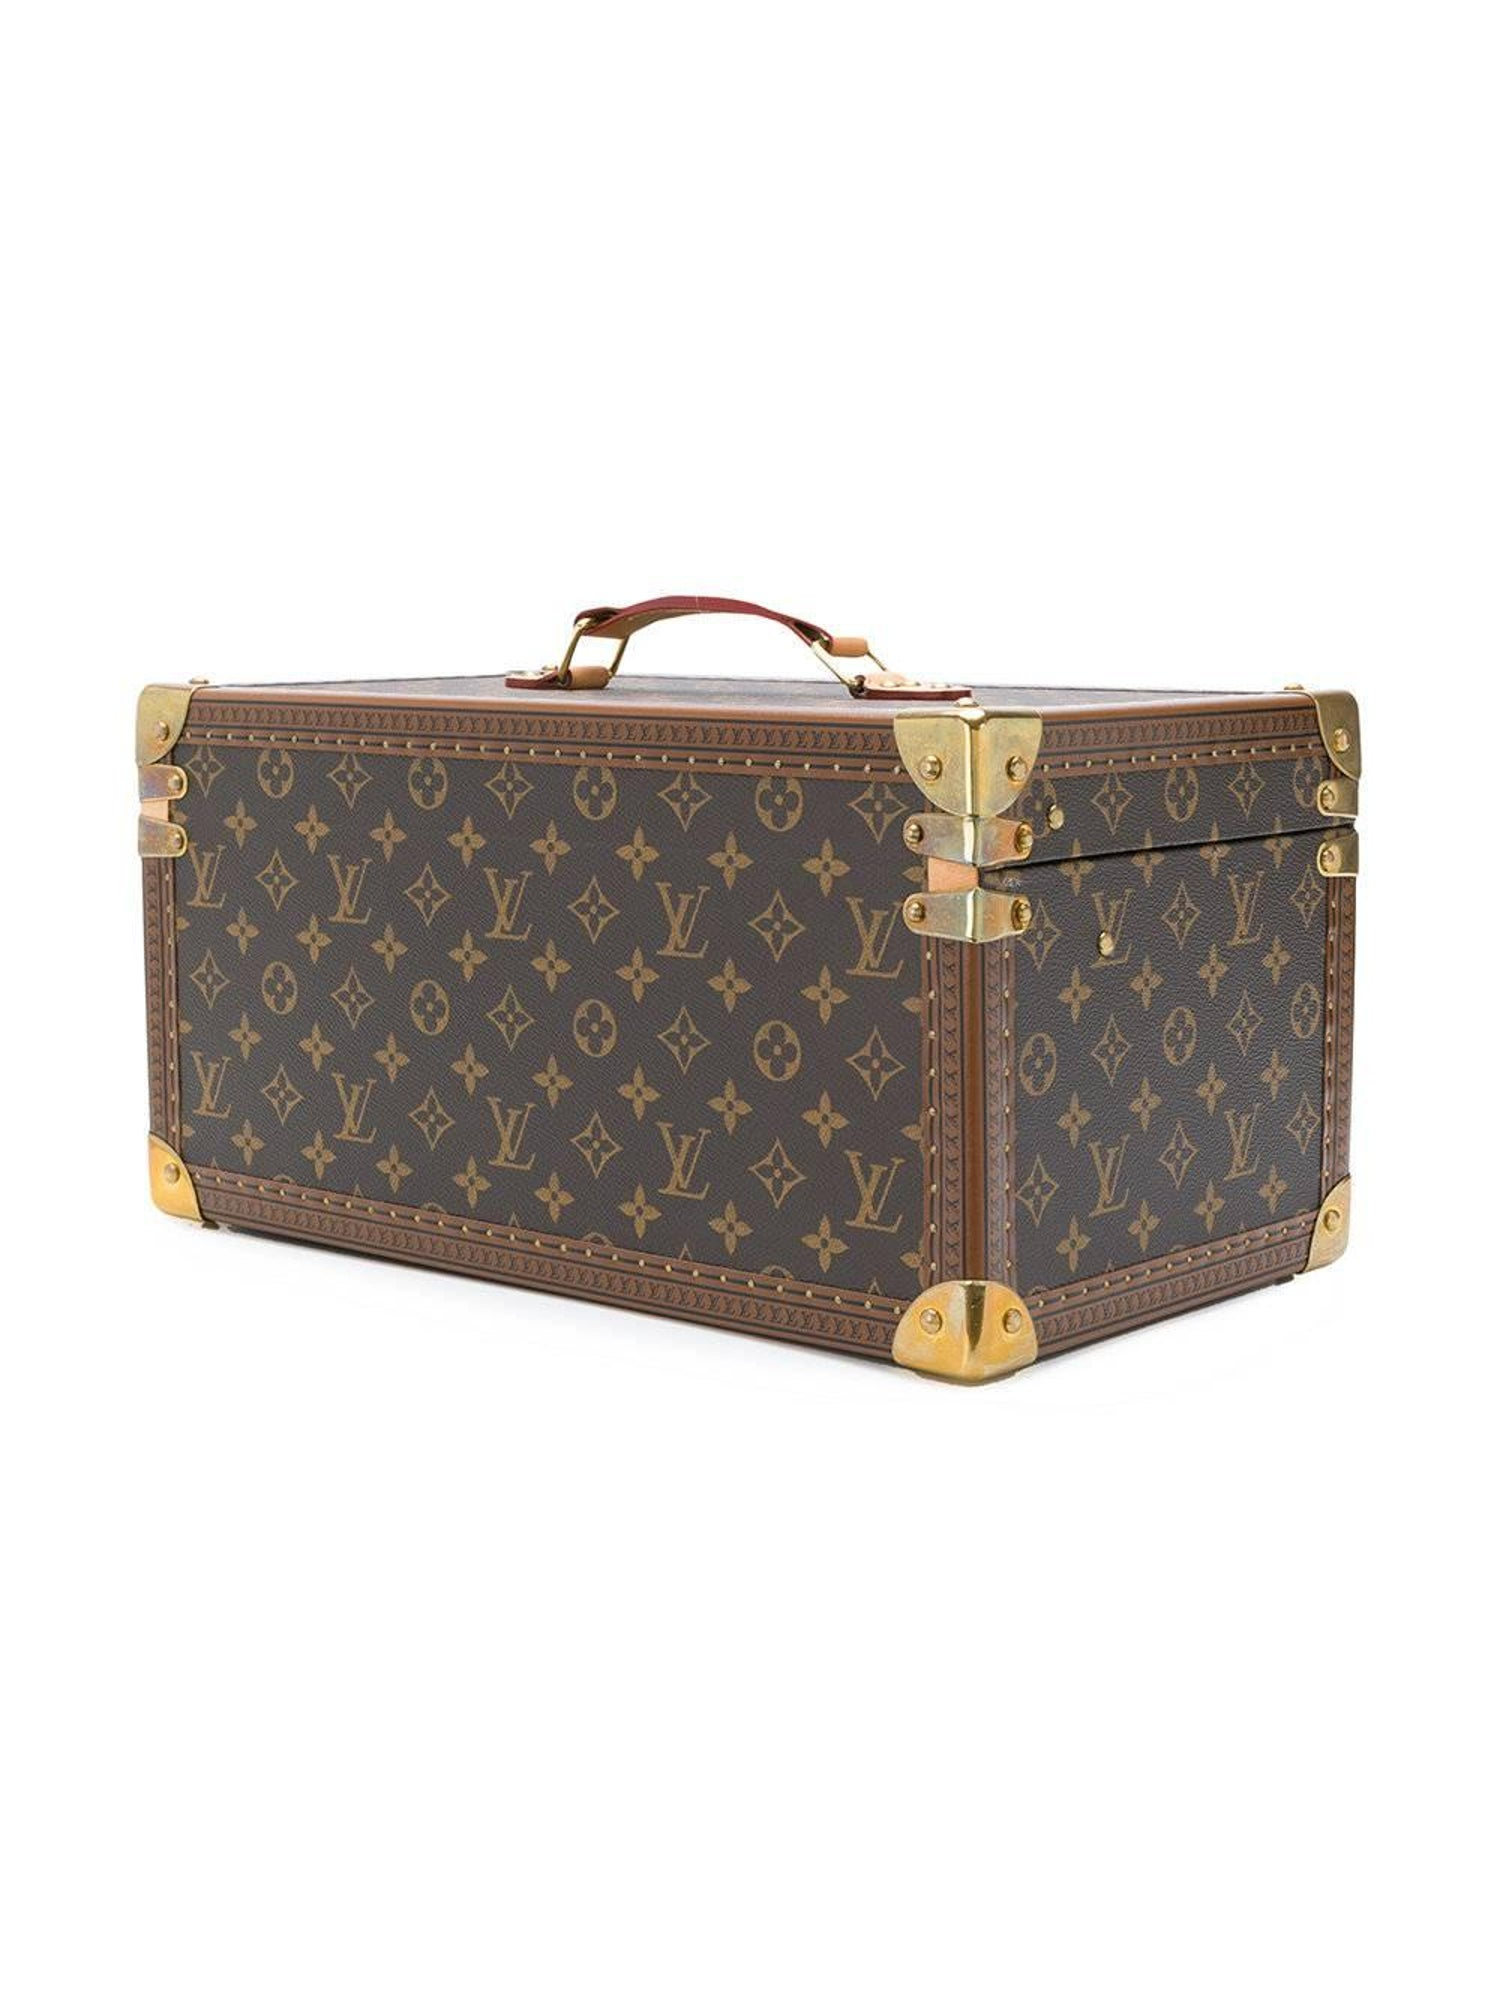 d407f4fc3 Louis Vuitton Monogram Trunk Cosmetic Case at 1stdibs